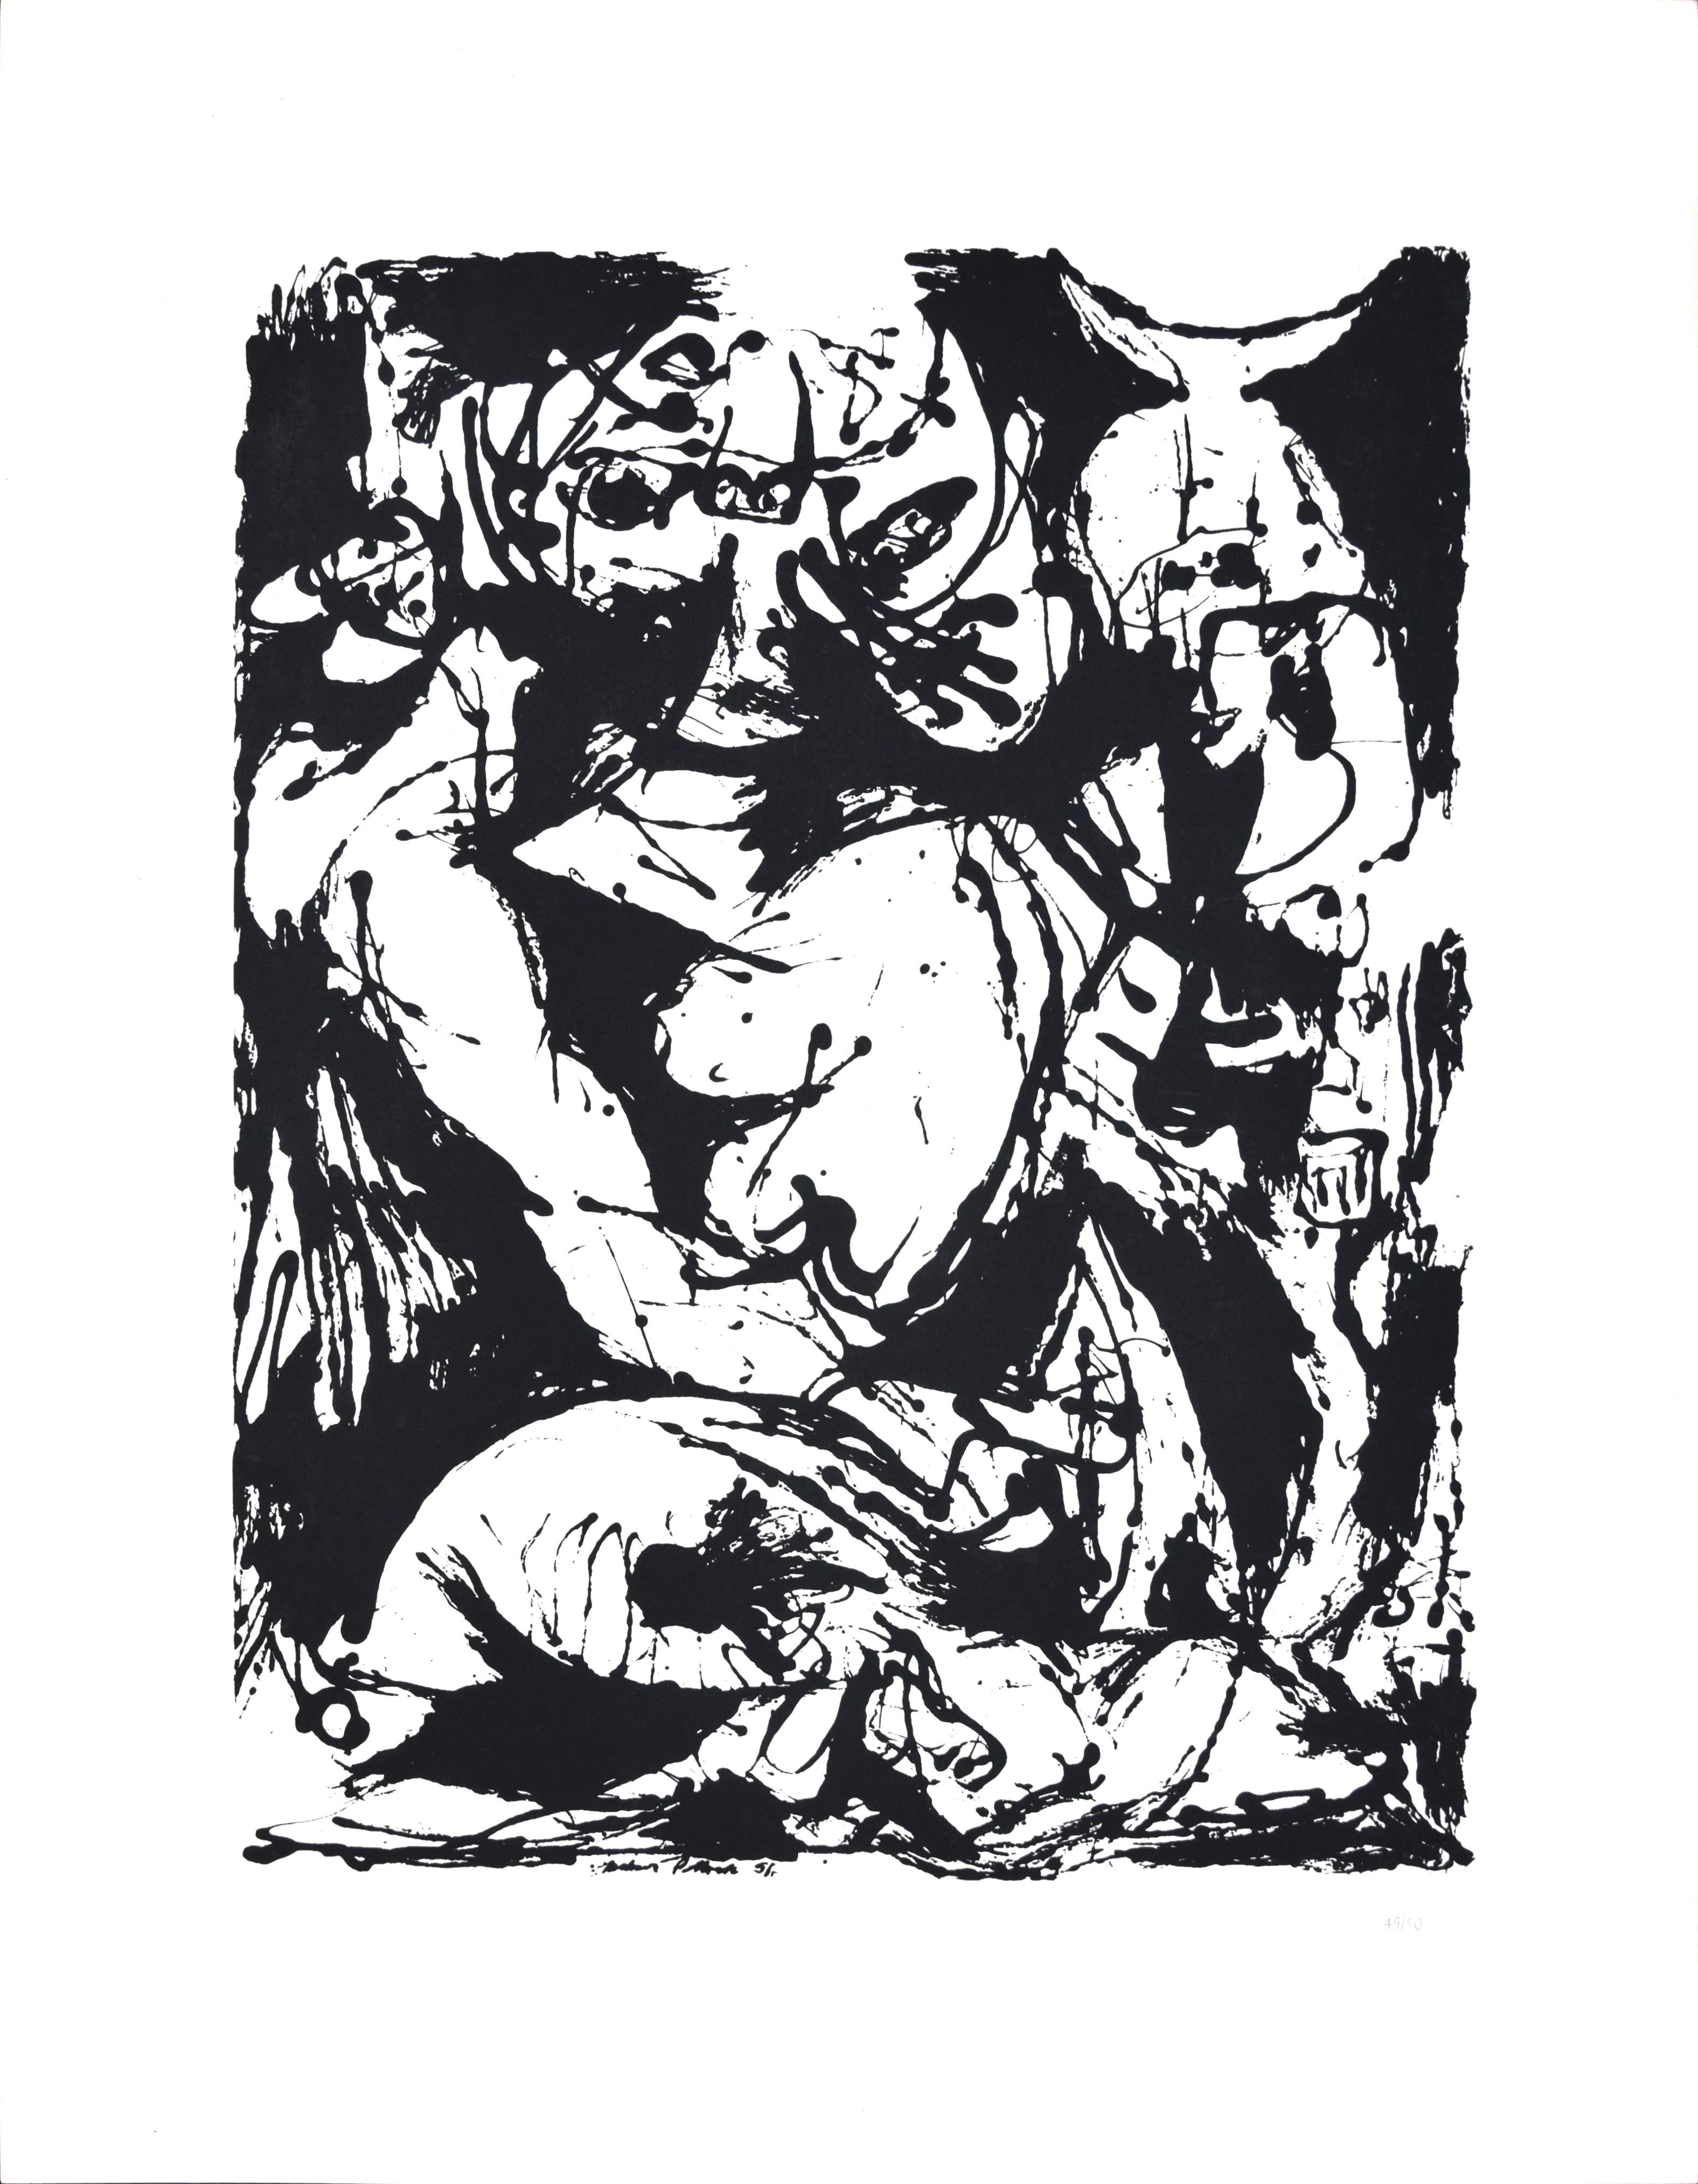 Untitled, CR1095 (after painting Number 22, CR344), 1951, printed 1964